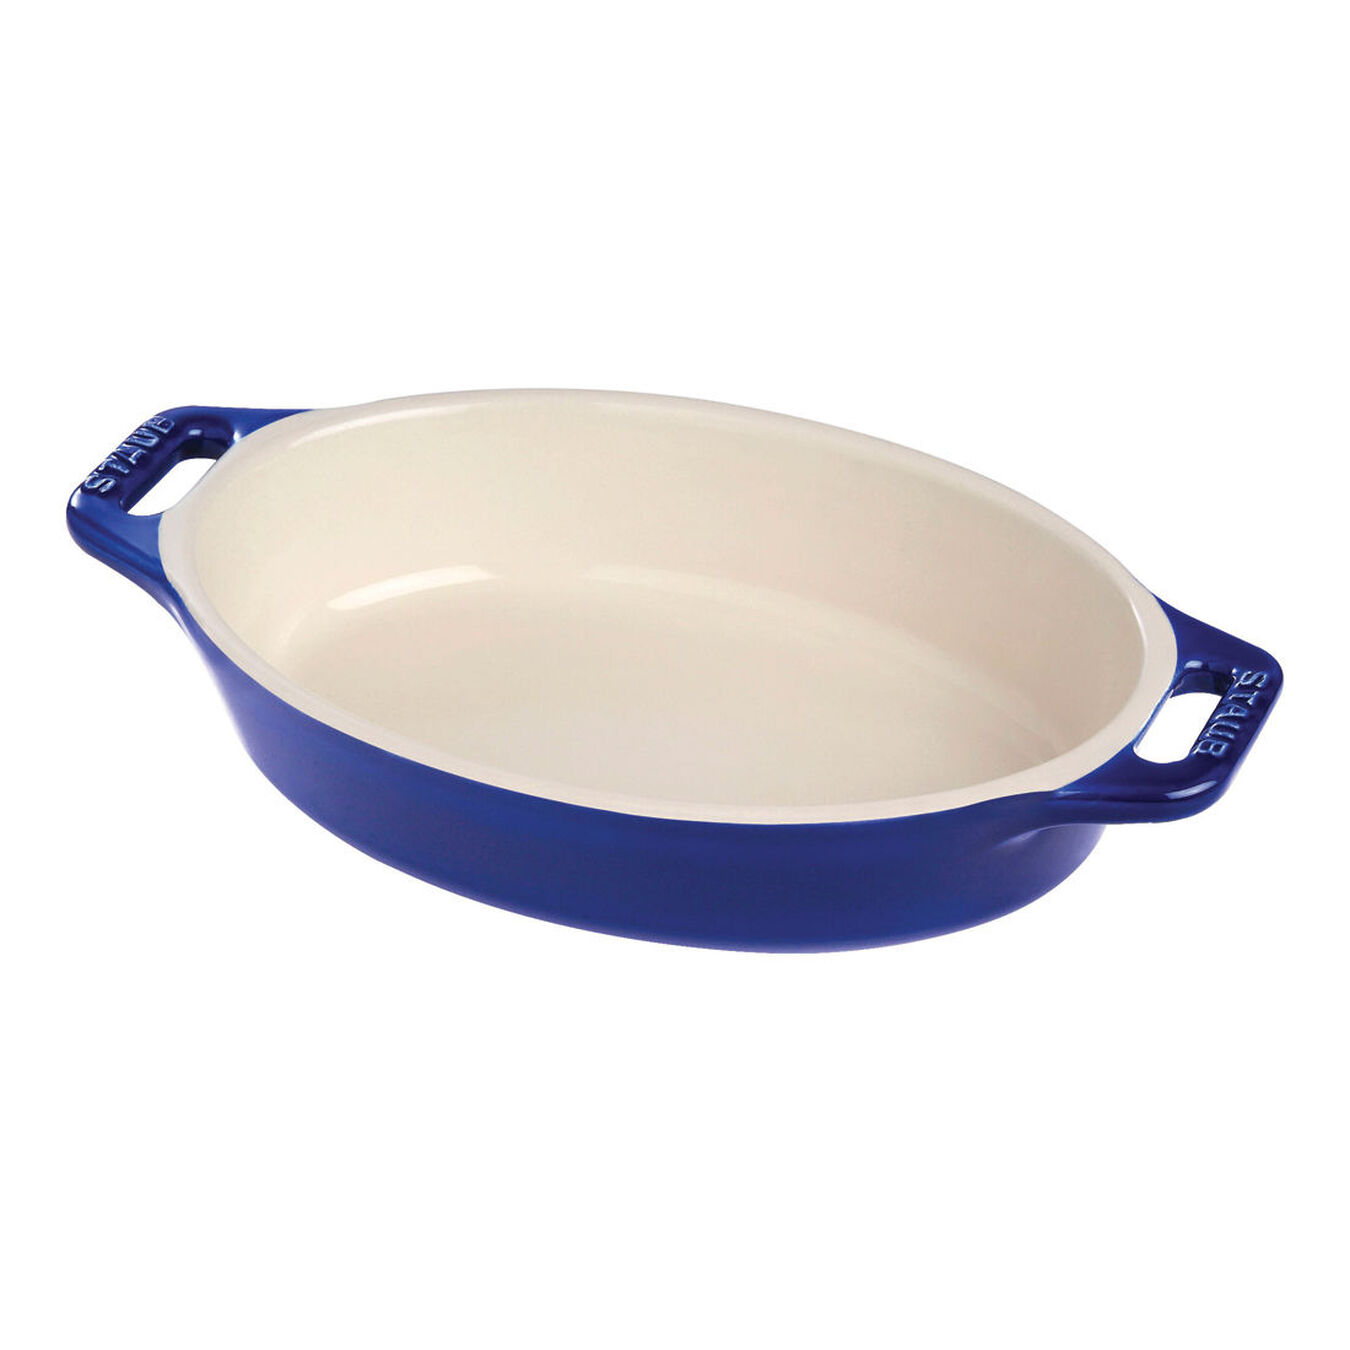 14.5-inch, oval, Special shape bakeware, dark blue,,large 1